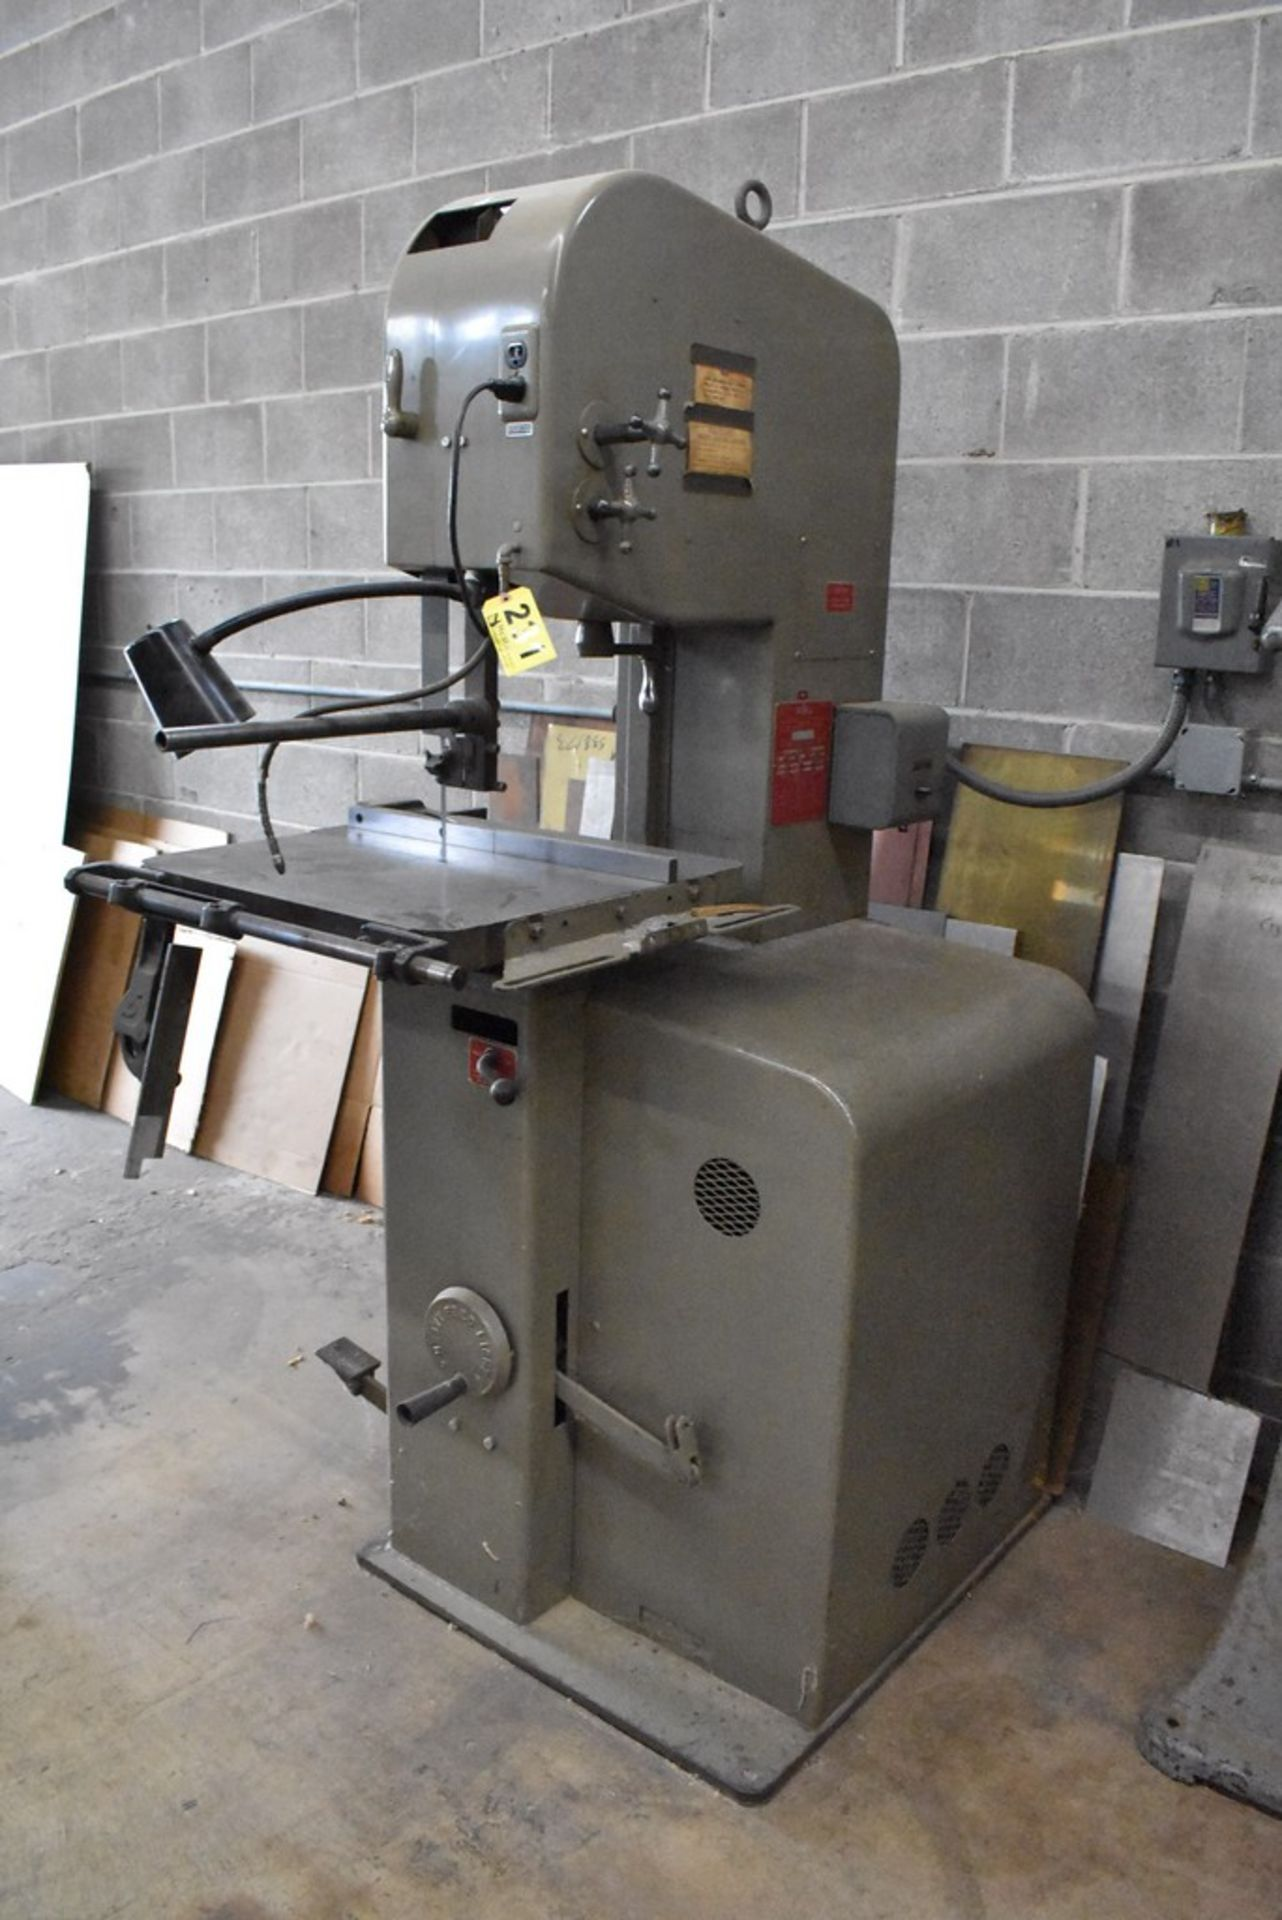 """DOALL 16"""" MODEL 1612-1 VERTICAL BAND SAW, S/N 148-681291, WITH BLADE WELDER - Image 9 of 9"""